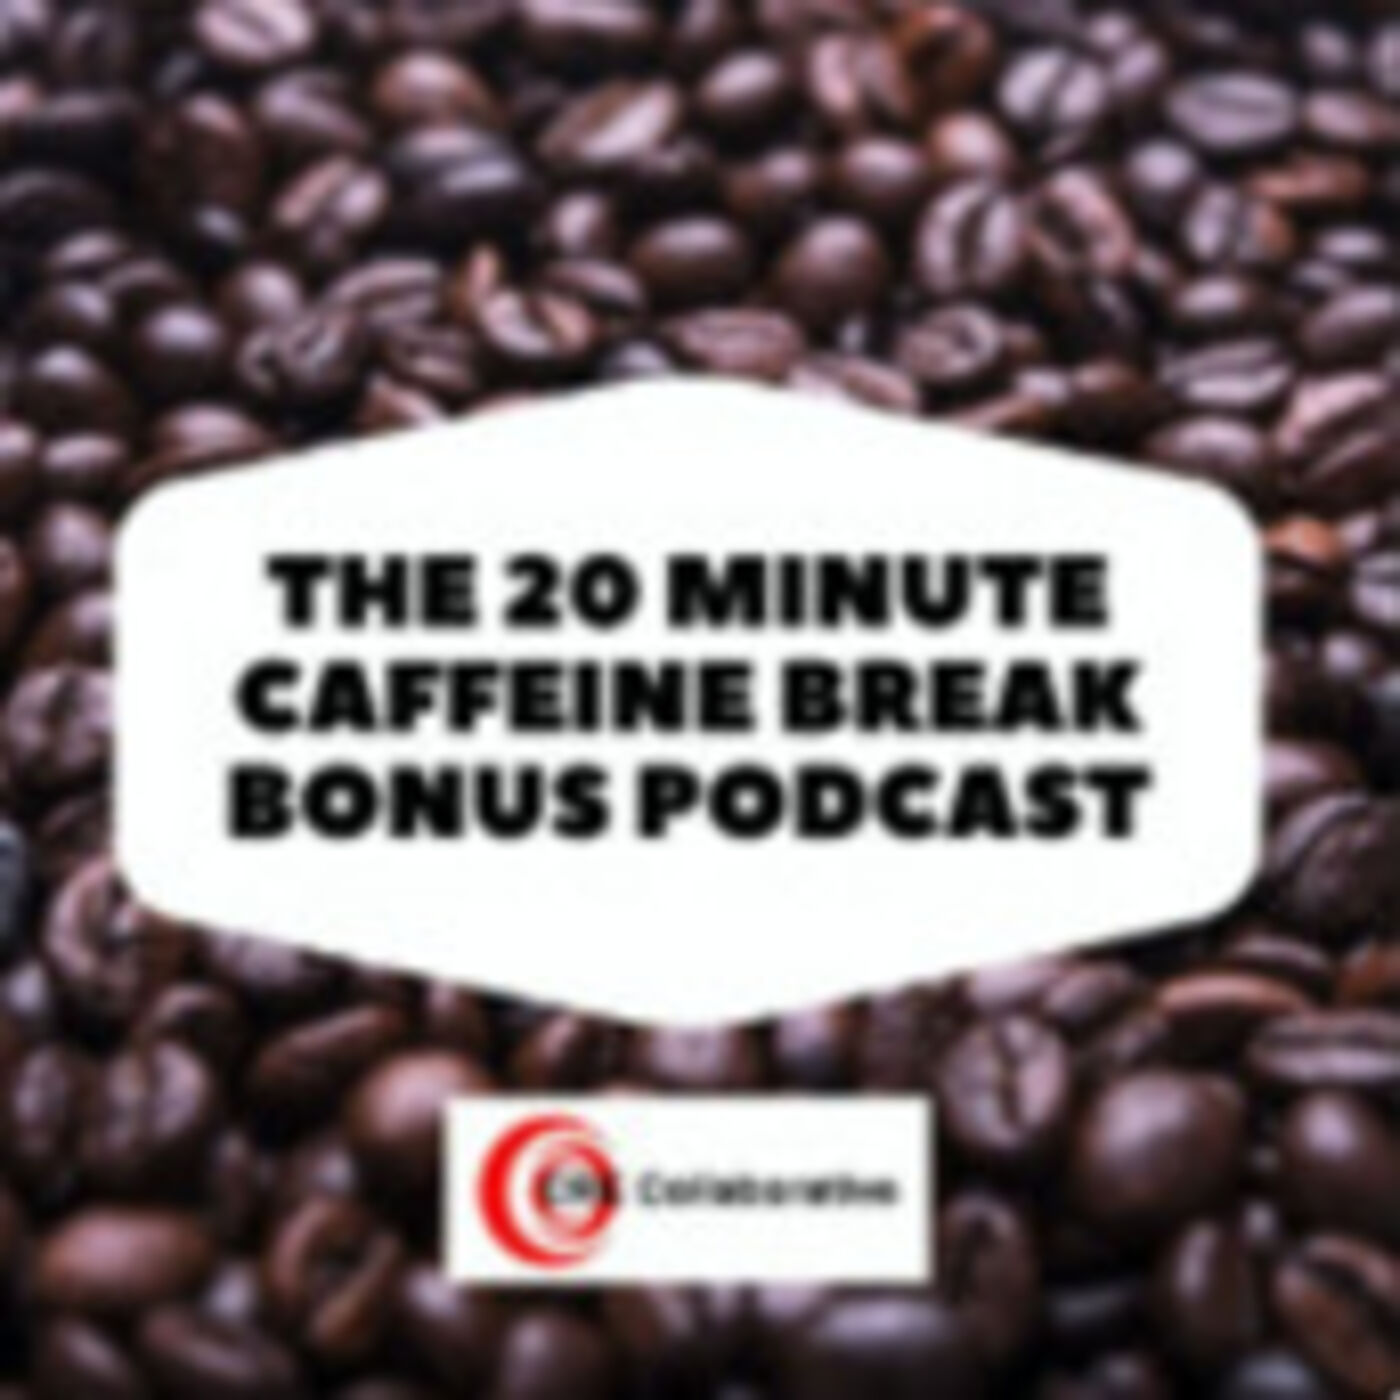 CAFFEINE BREAK - Part II - Your level of technology, multiplied by gross income equals your year-end earnings in 2020 in Commercial Real Estate!